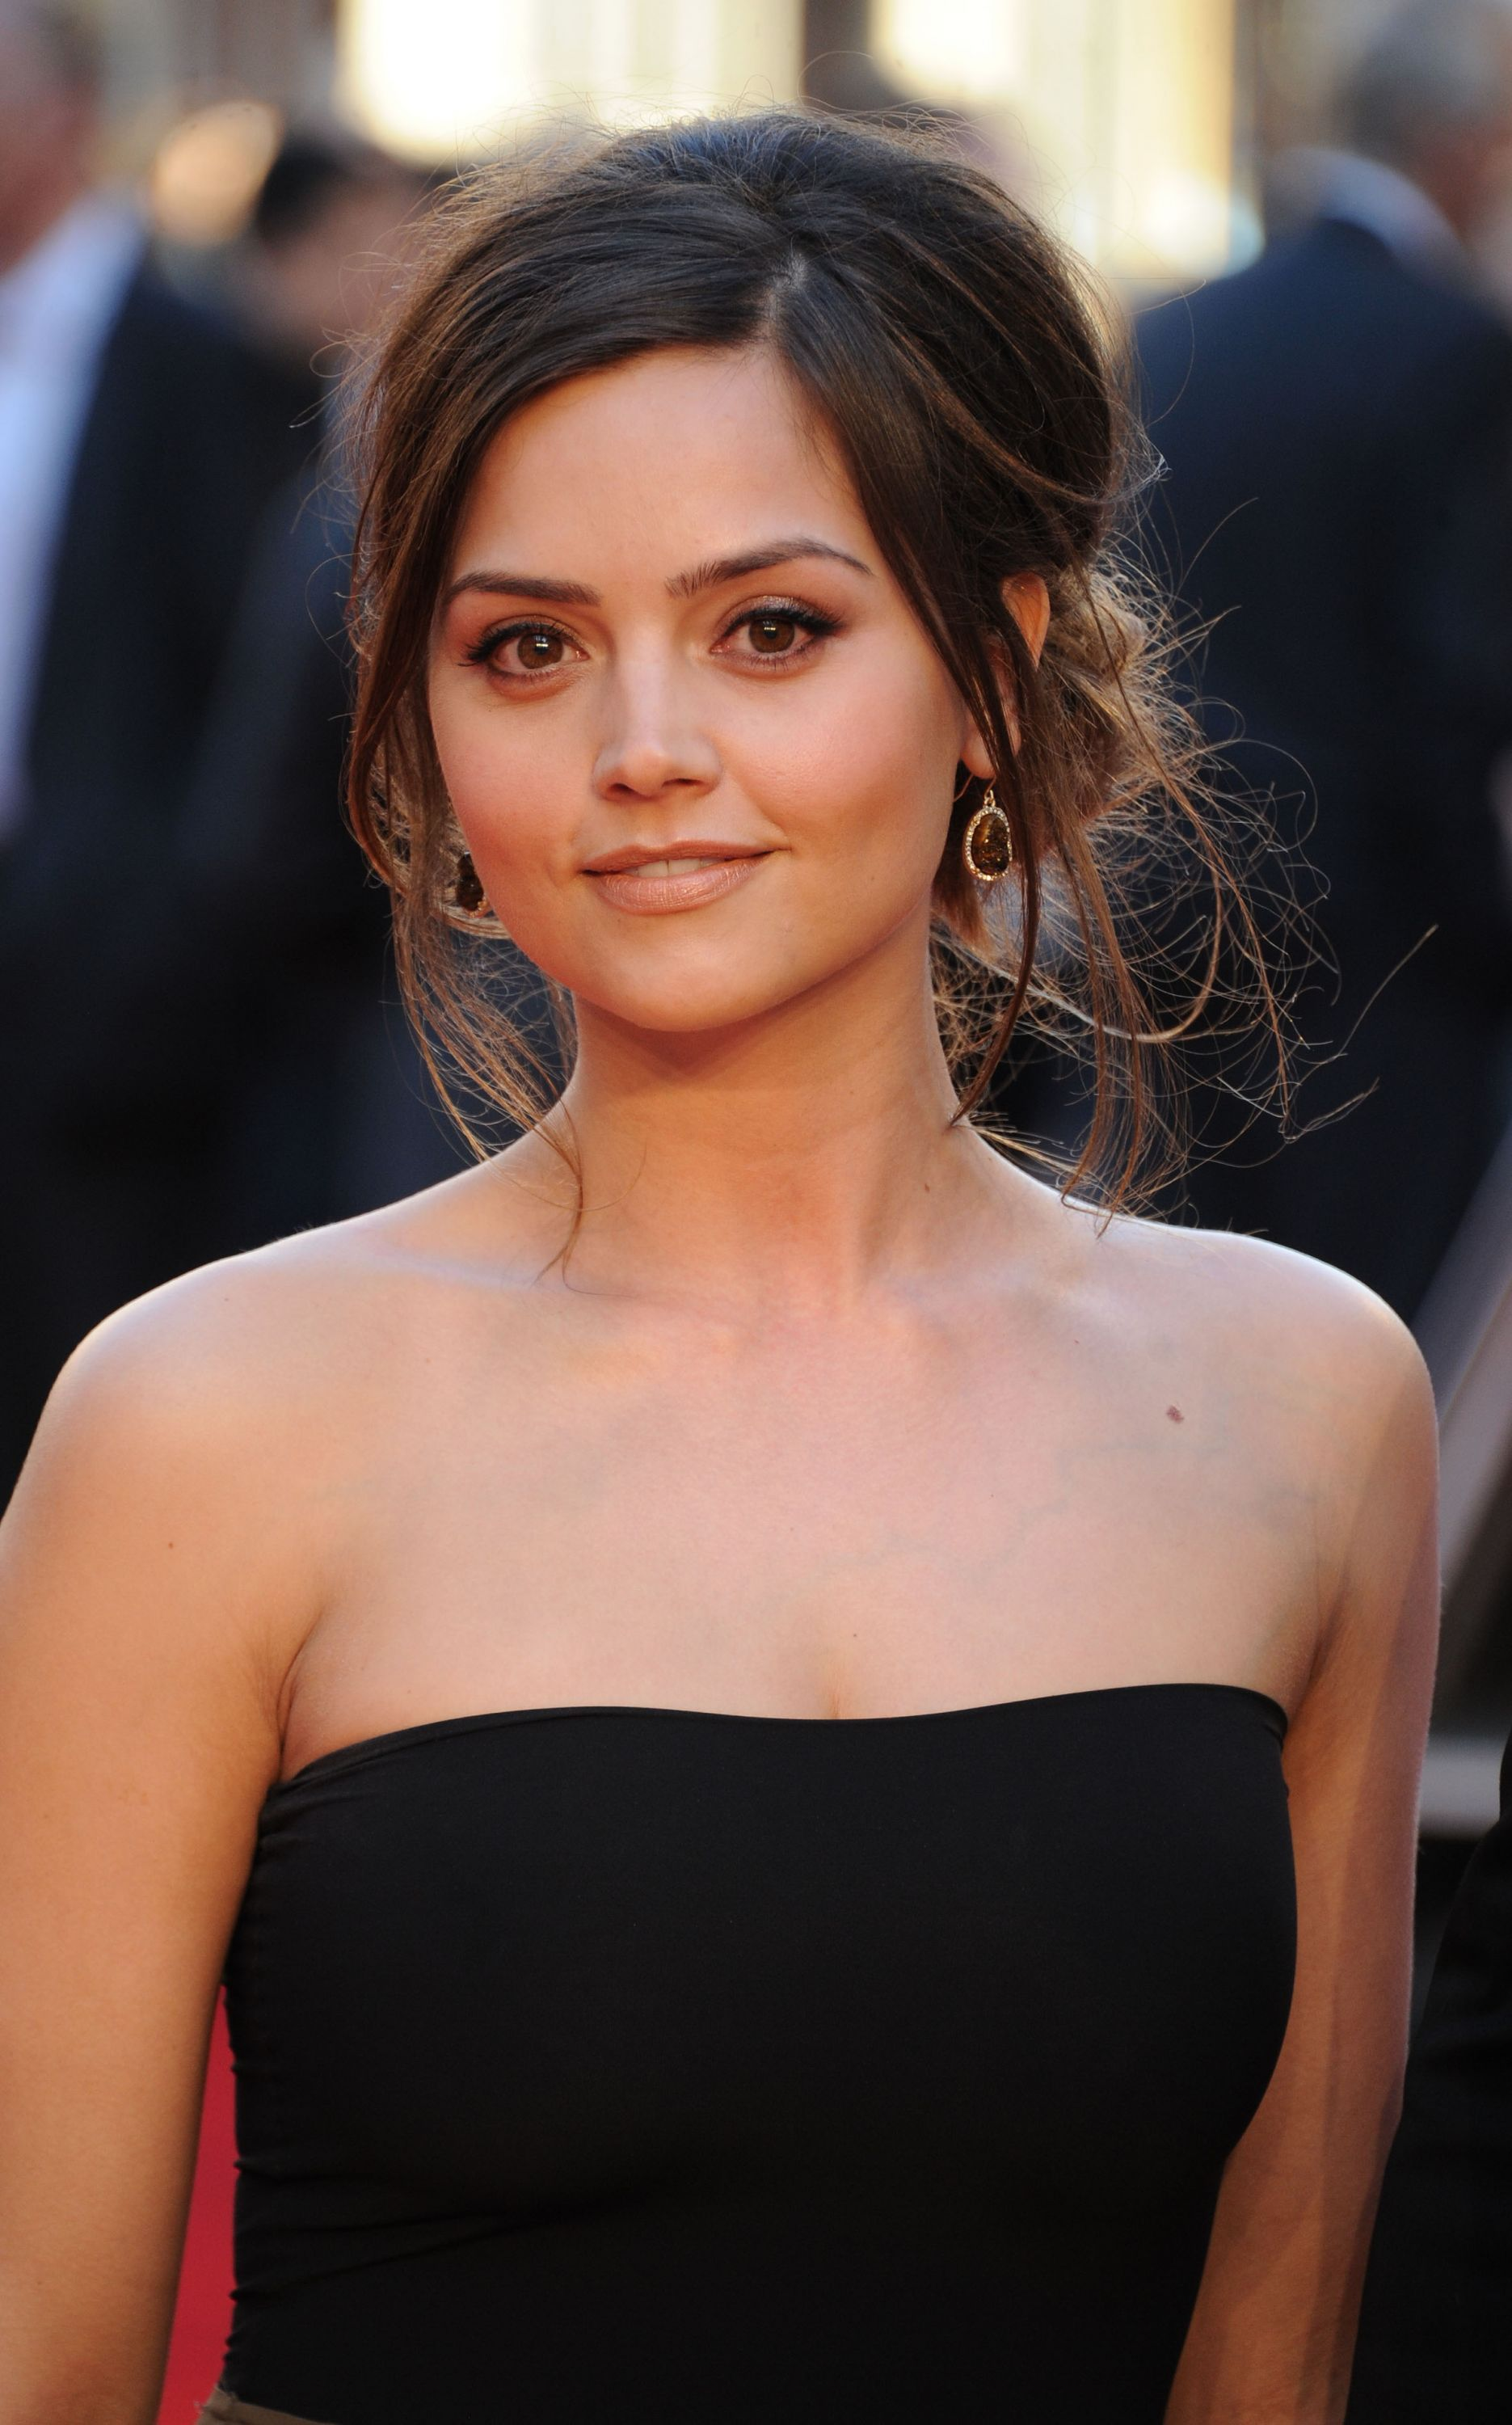 Watch Jenna Coleman (born 1986) video